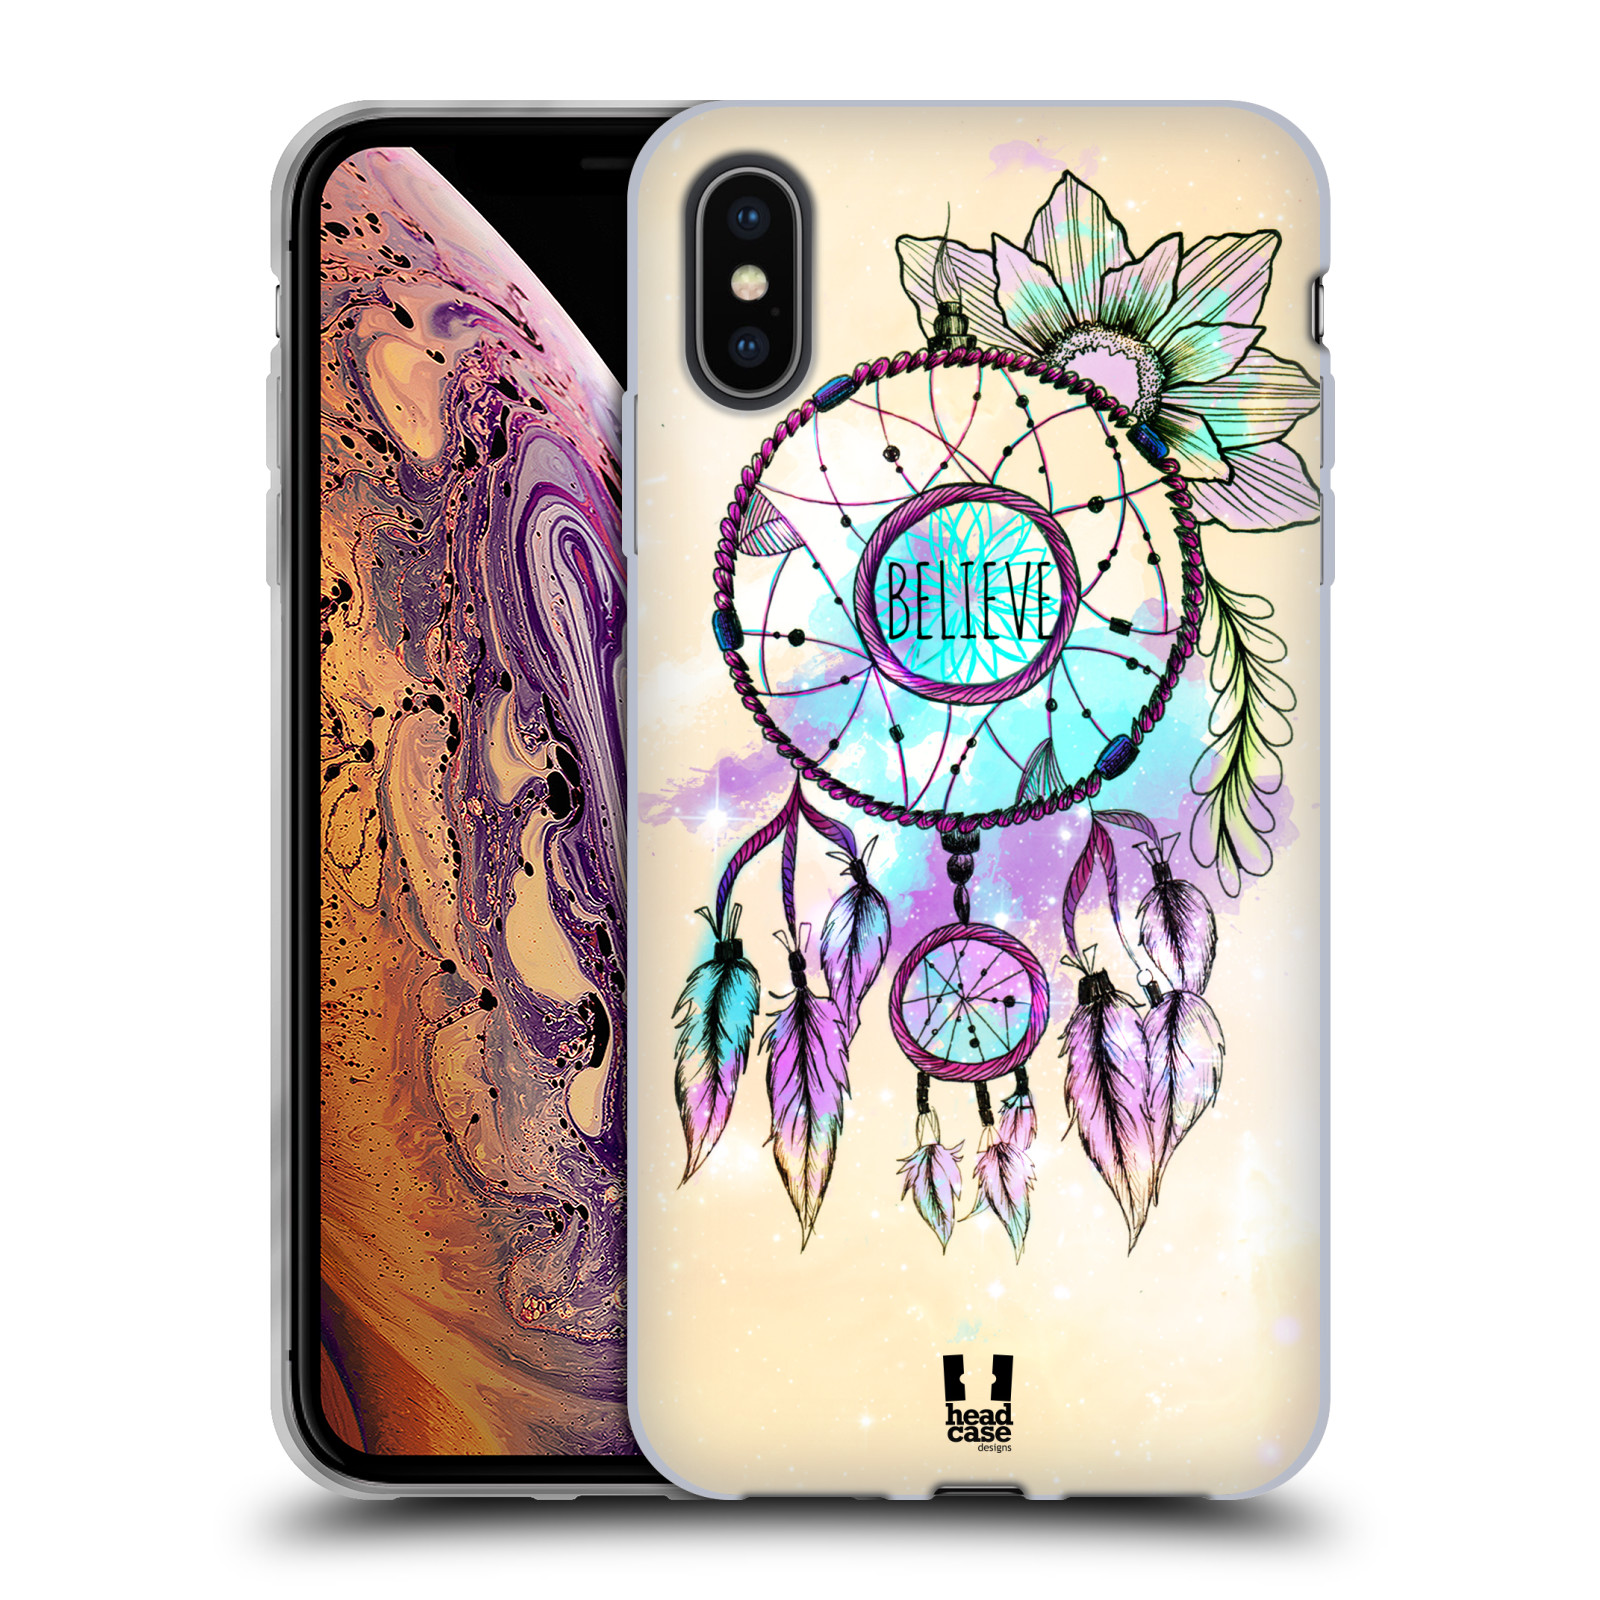 Silikonové pouzdro na mobil Apple iPhone XS Max - Head Case - MIX BELIEVE